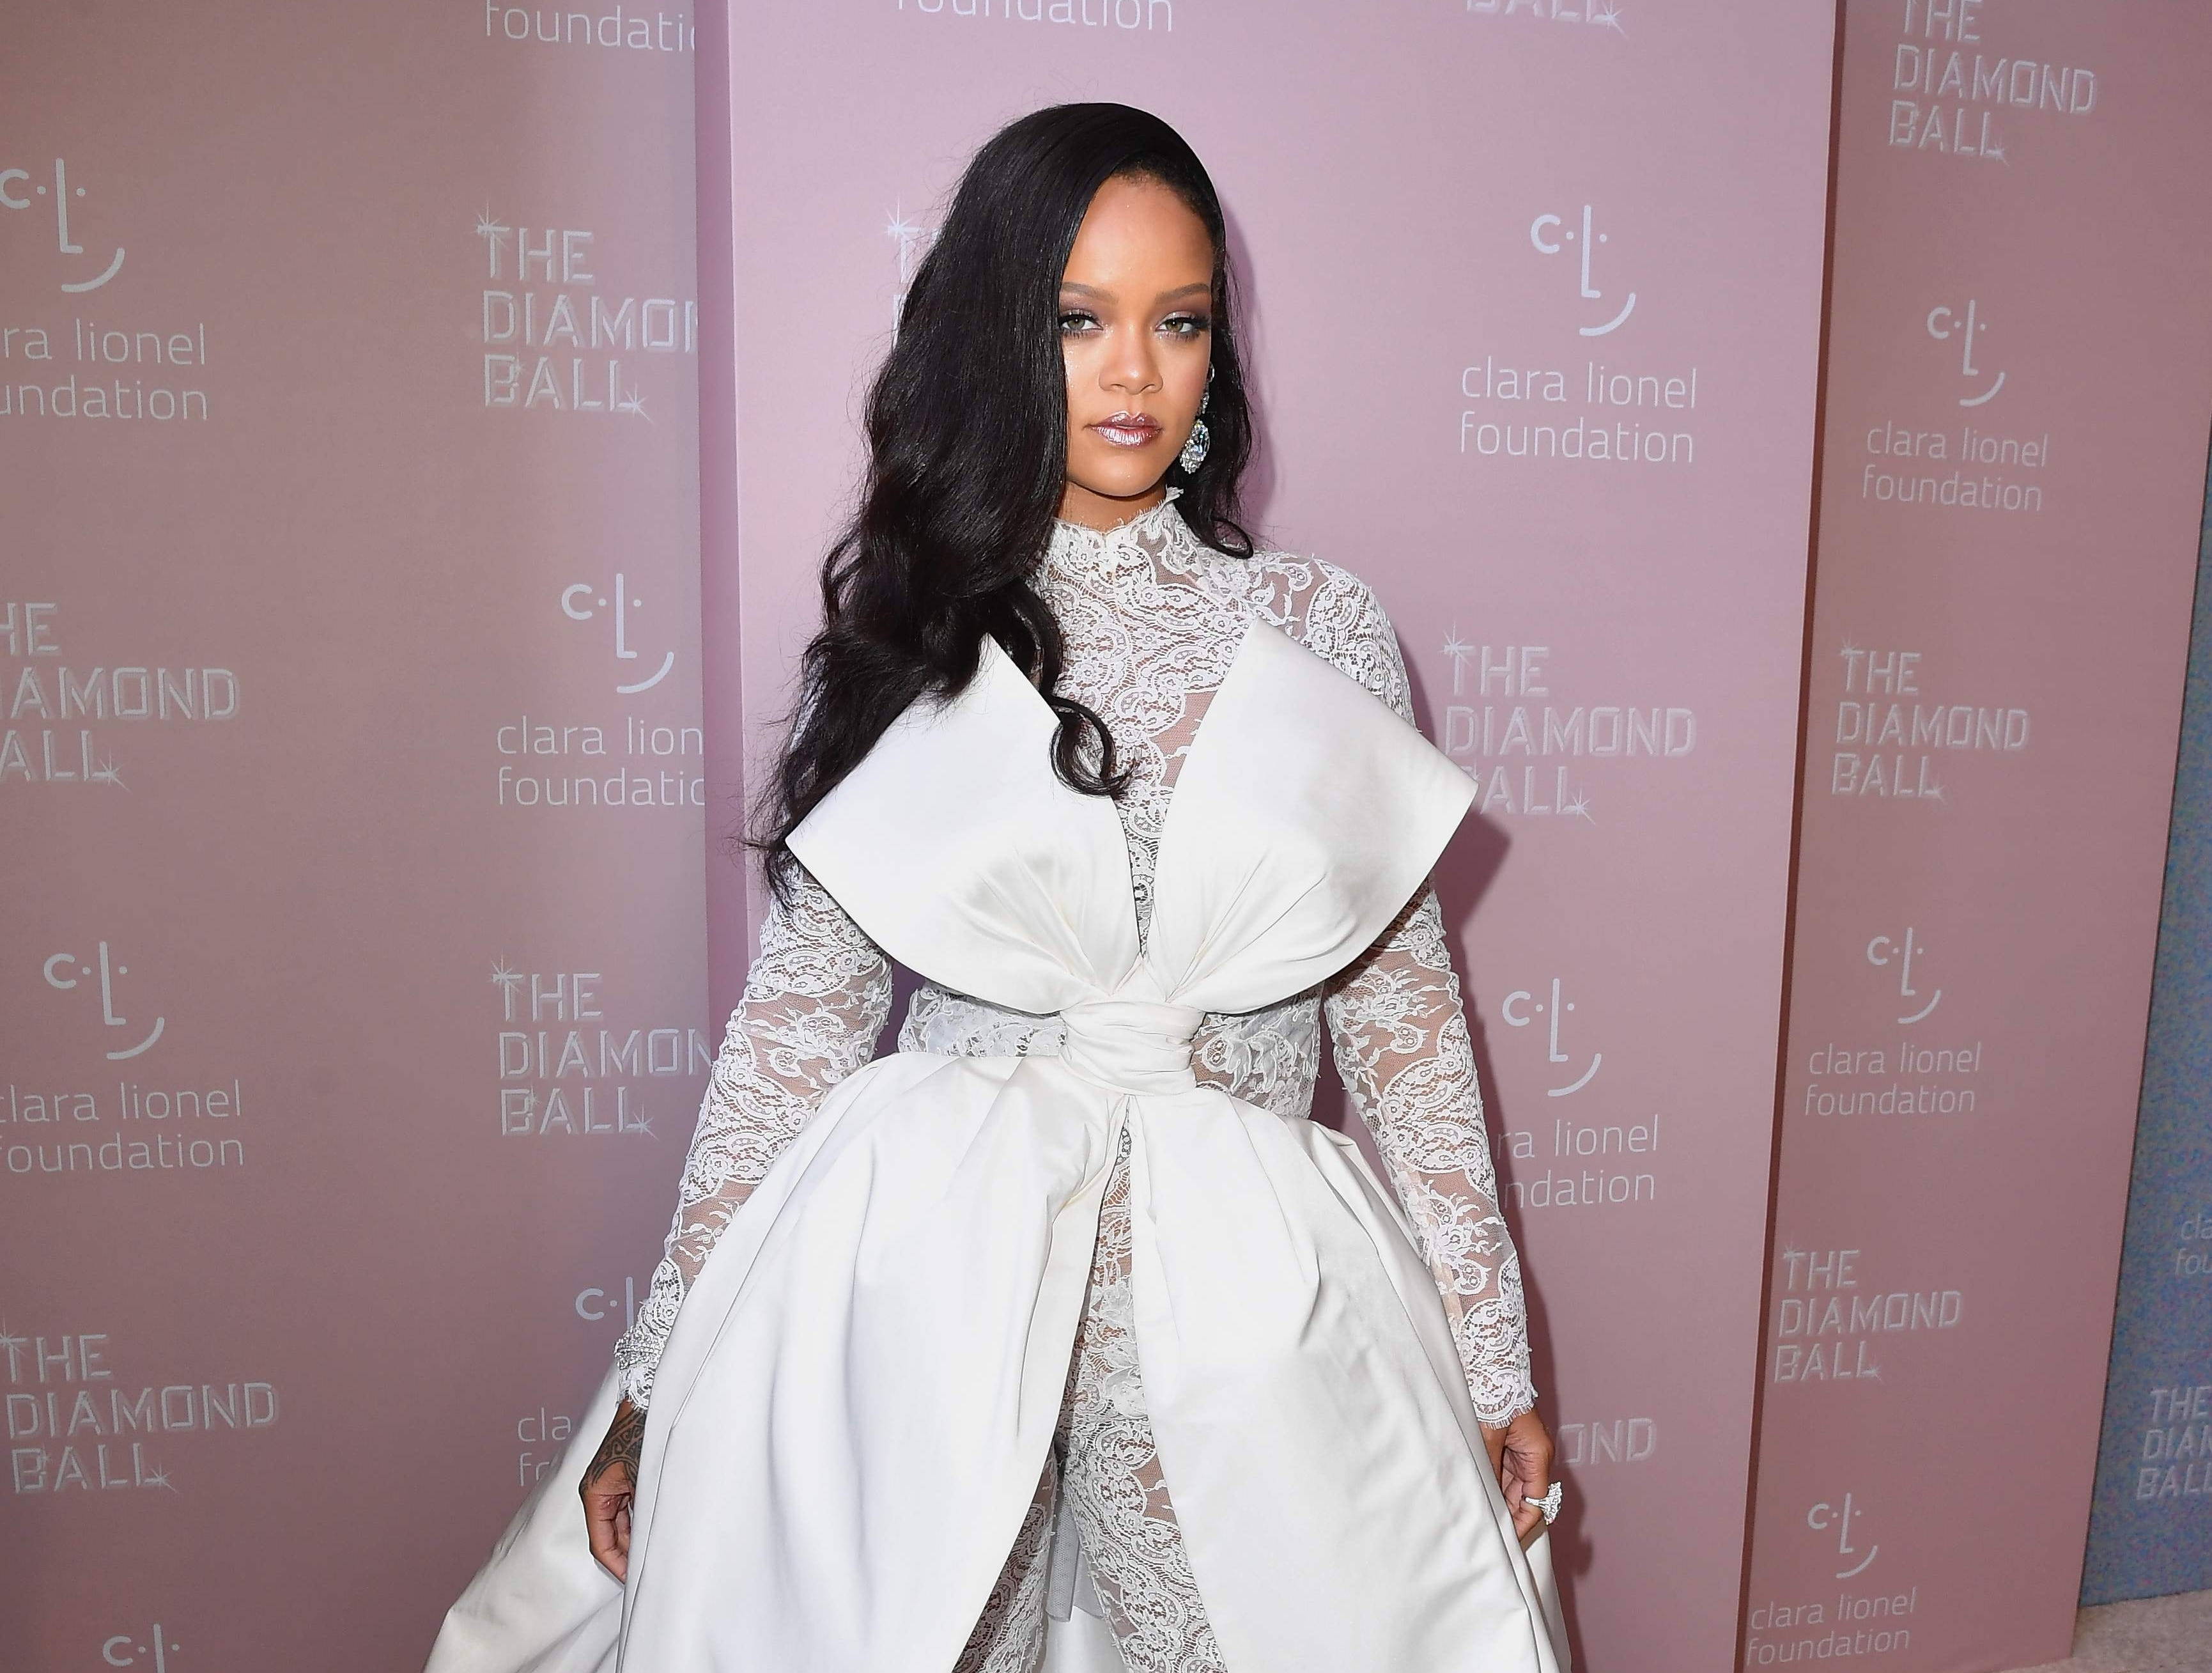 Rihanna attends Rihanna's 4th Annual Diamond Ball at Cipriani Wall Street on September 13, 2018 in New York City. (Photo by Angela Weiss / AFP)ANGELA WEISS/AFP/Getty Images ORIG FILE ID: AFP_1932NT